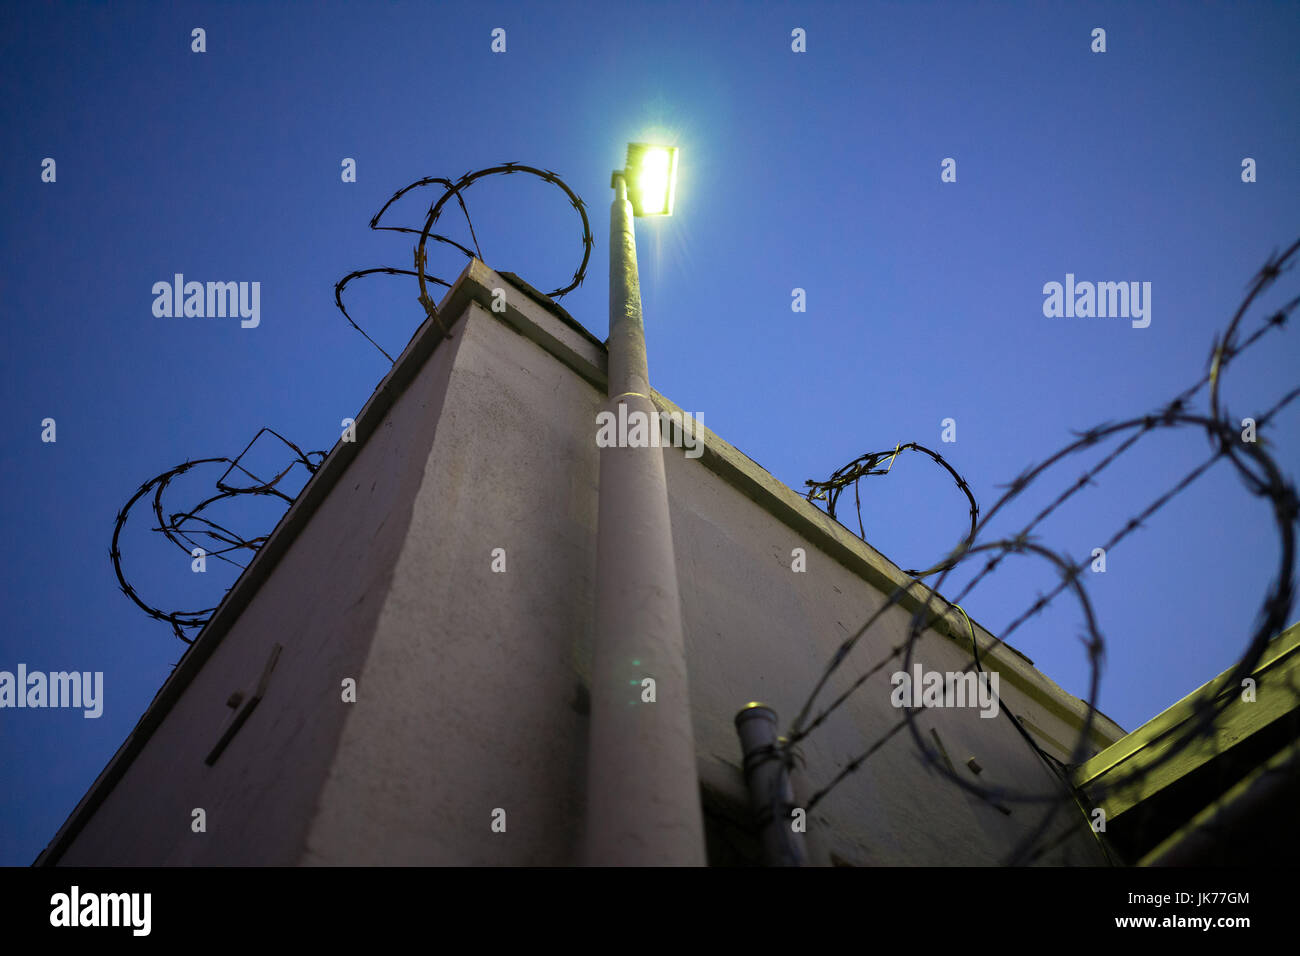 Fence and building protected by barb wire at night. - Stock Image